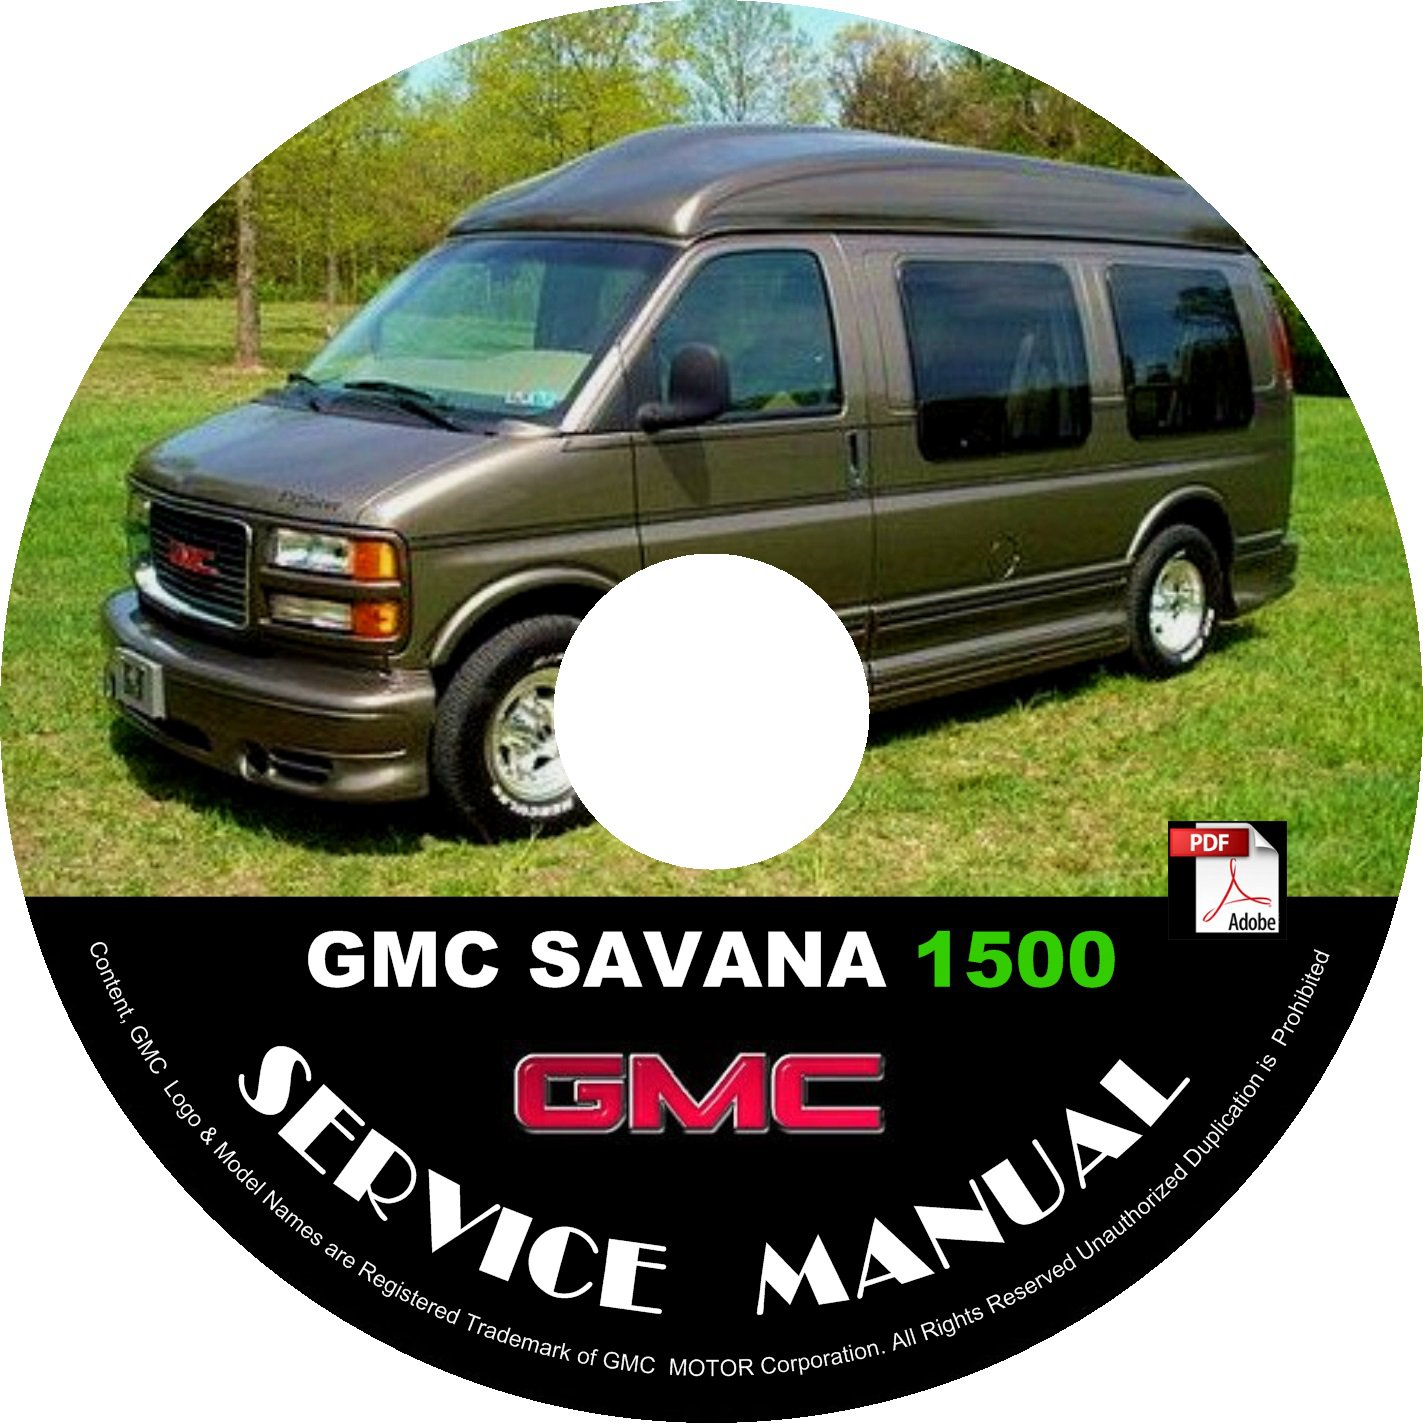 2000 GMC Savana 1500 G1500 Service Repair Shop Manual on CD '00 Fix Repair Rebuild Workshop Guide